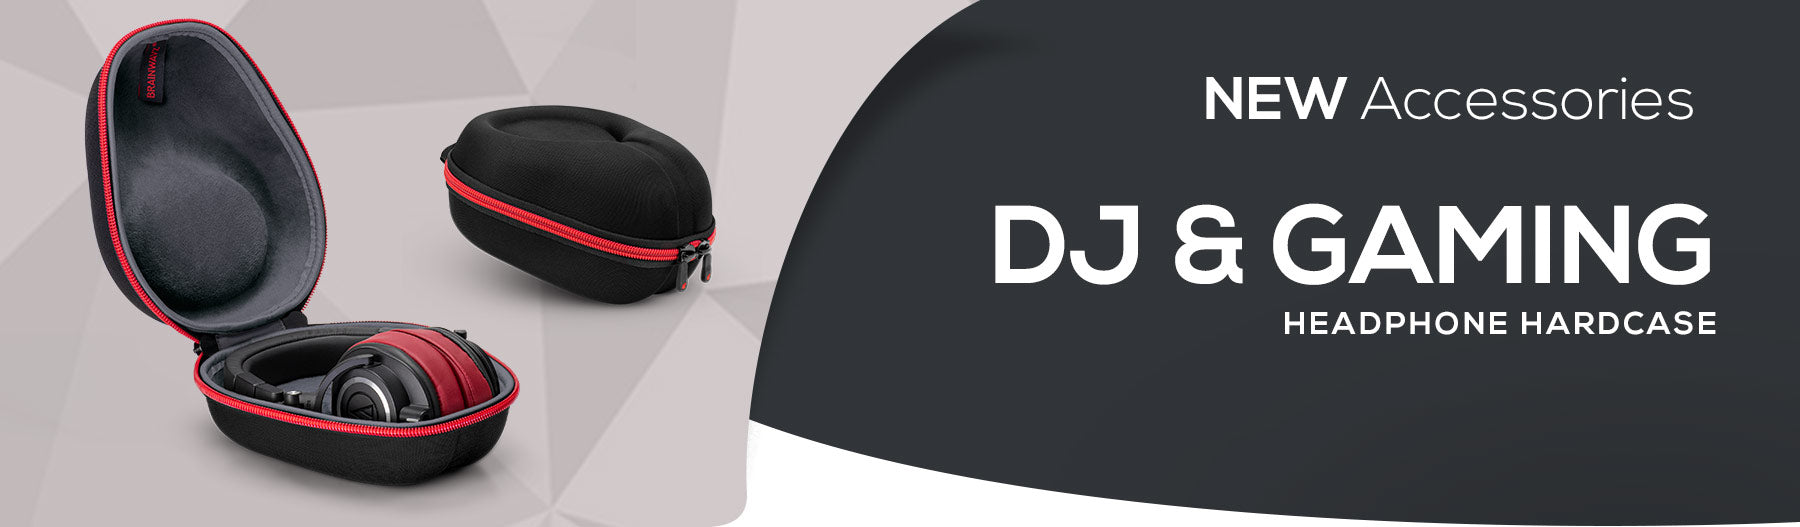 NEW - DJ & Gaming Hard Case